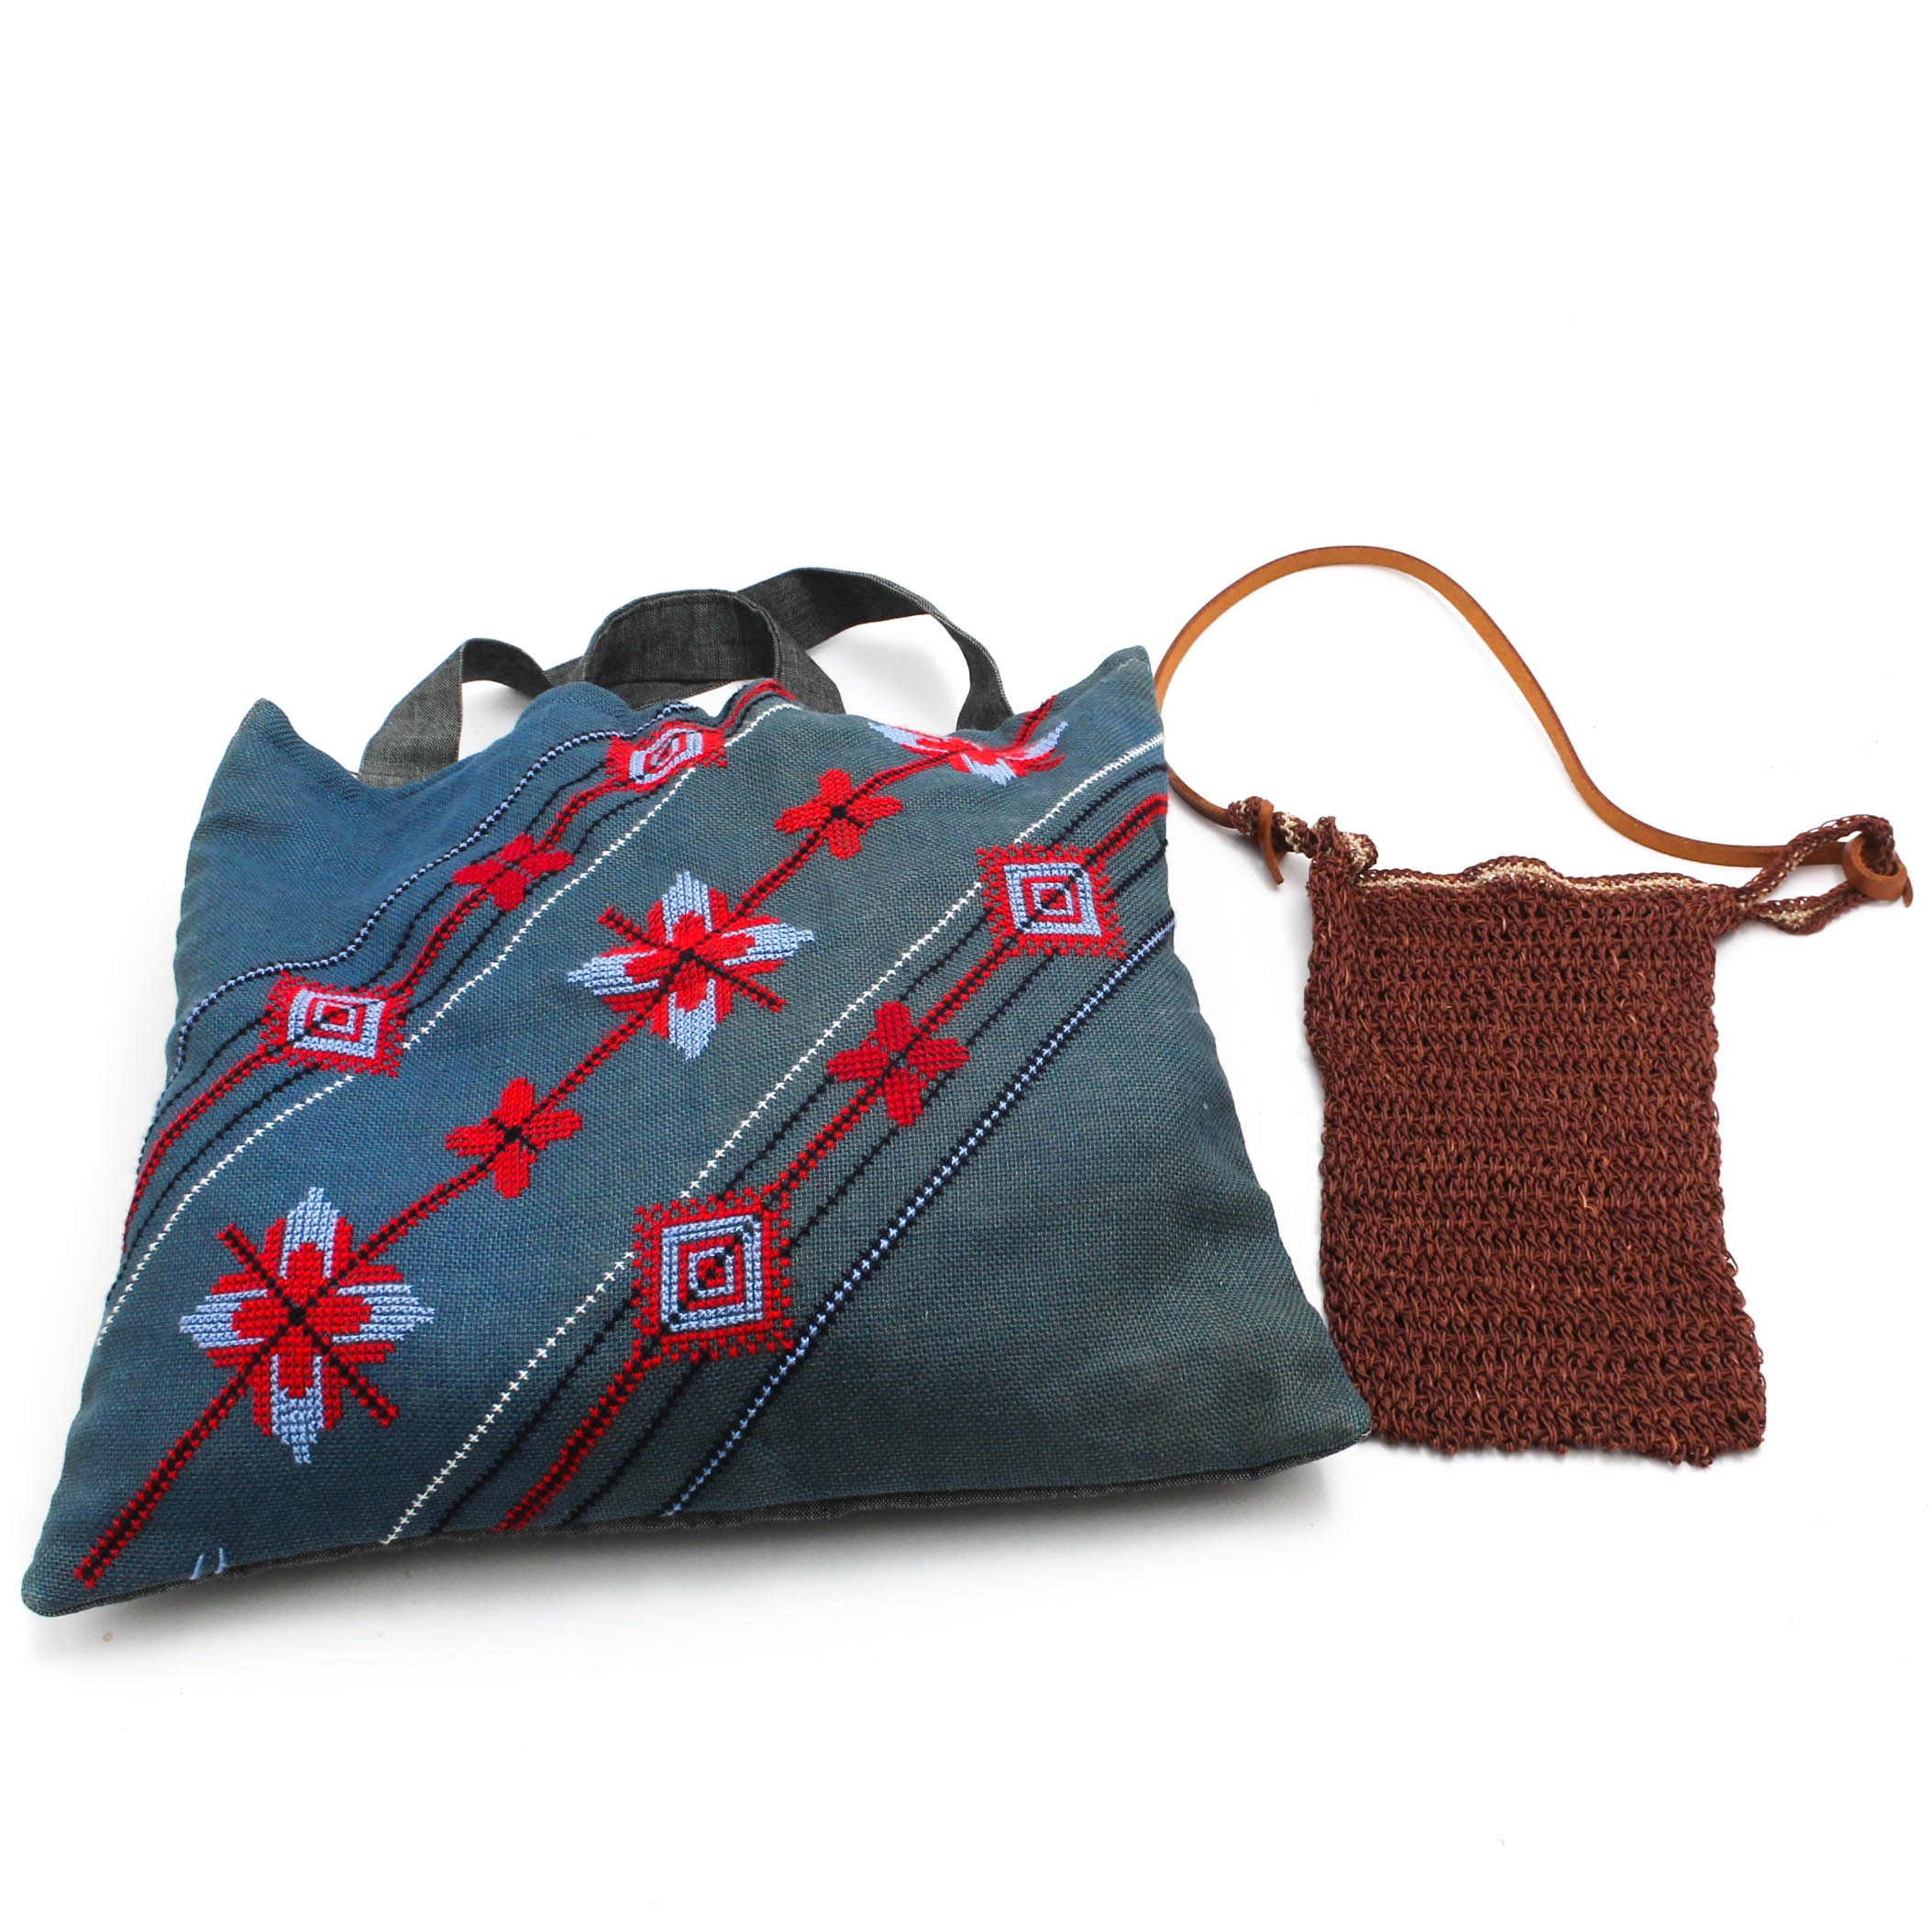 Matta Woven Bag with Leather Strap and Unlabeled Tote Bag